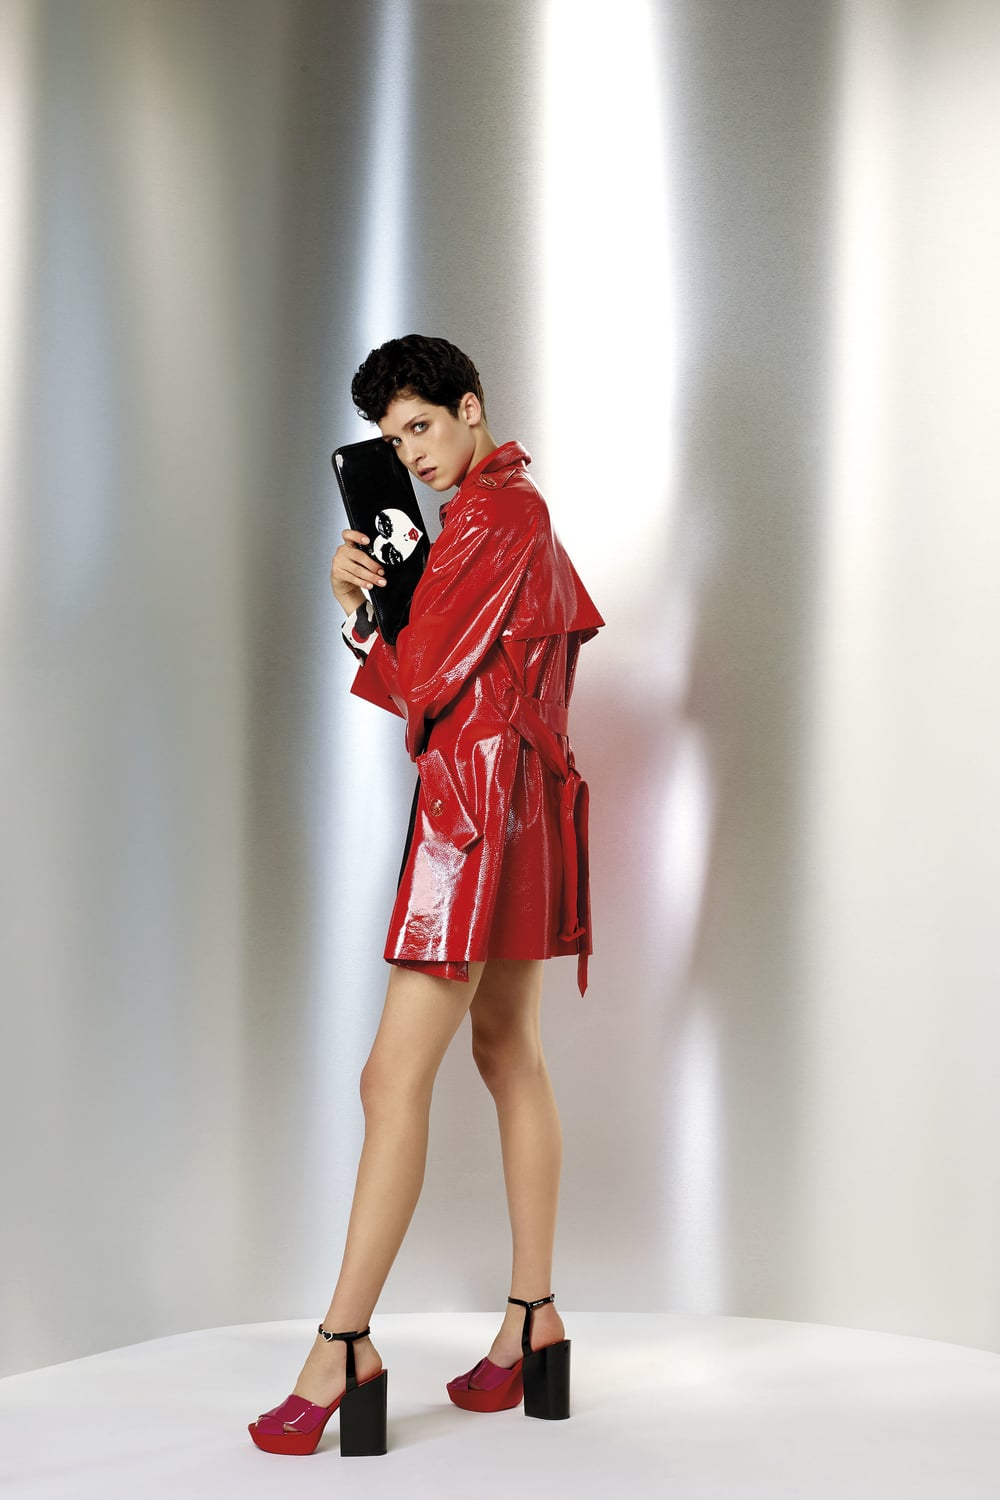 020_1_Patent_Leather_Trench.jpg